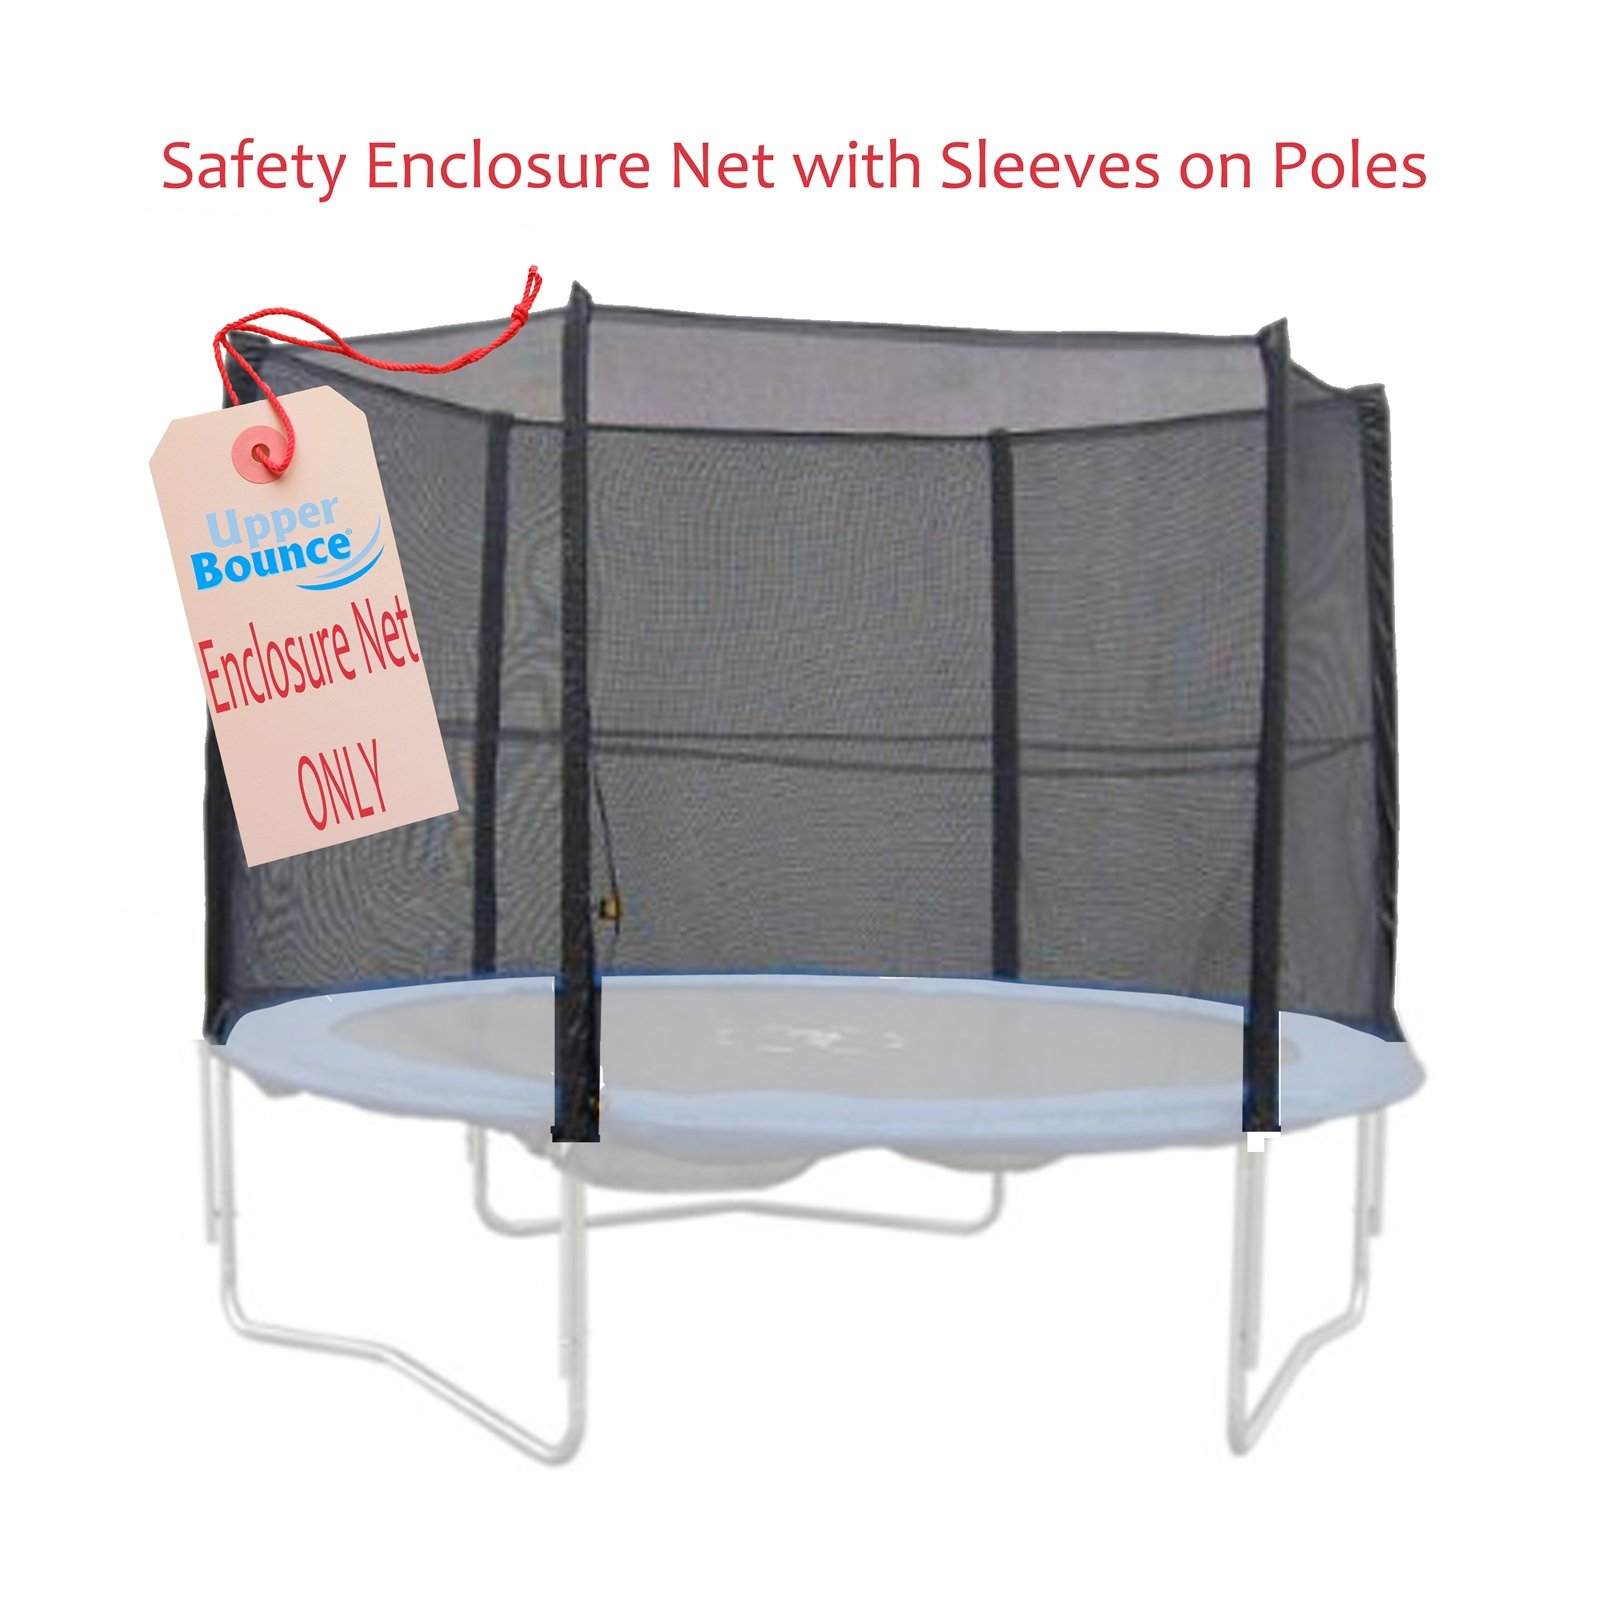 Upper Bounce Trampoline Enclosure Safety Net Fits for 7.5-Feet Round Frame Using 6 Straight Poles, Installs Outside of Frame- (Poles Sold Separately)